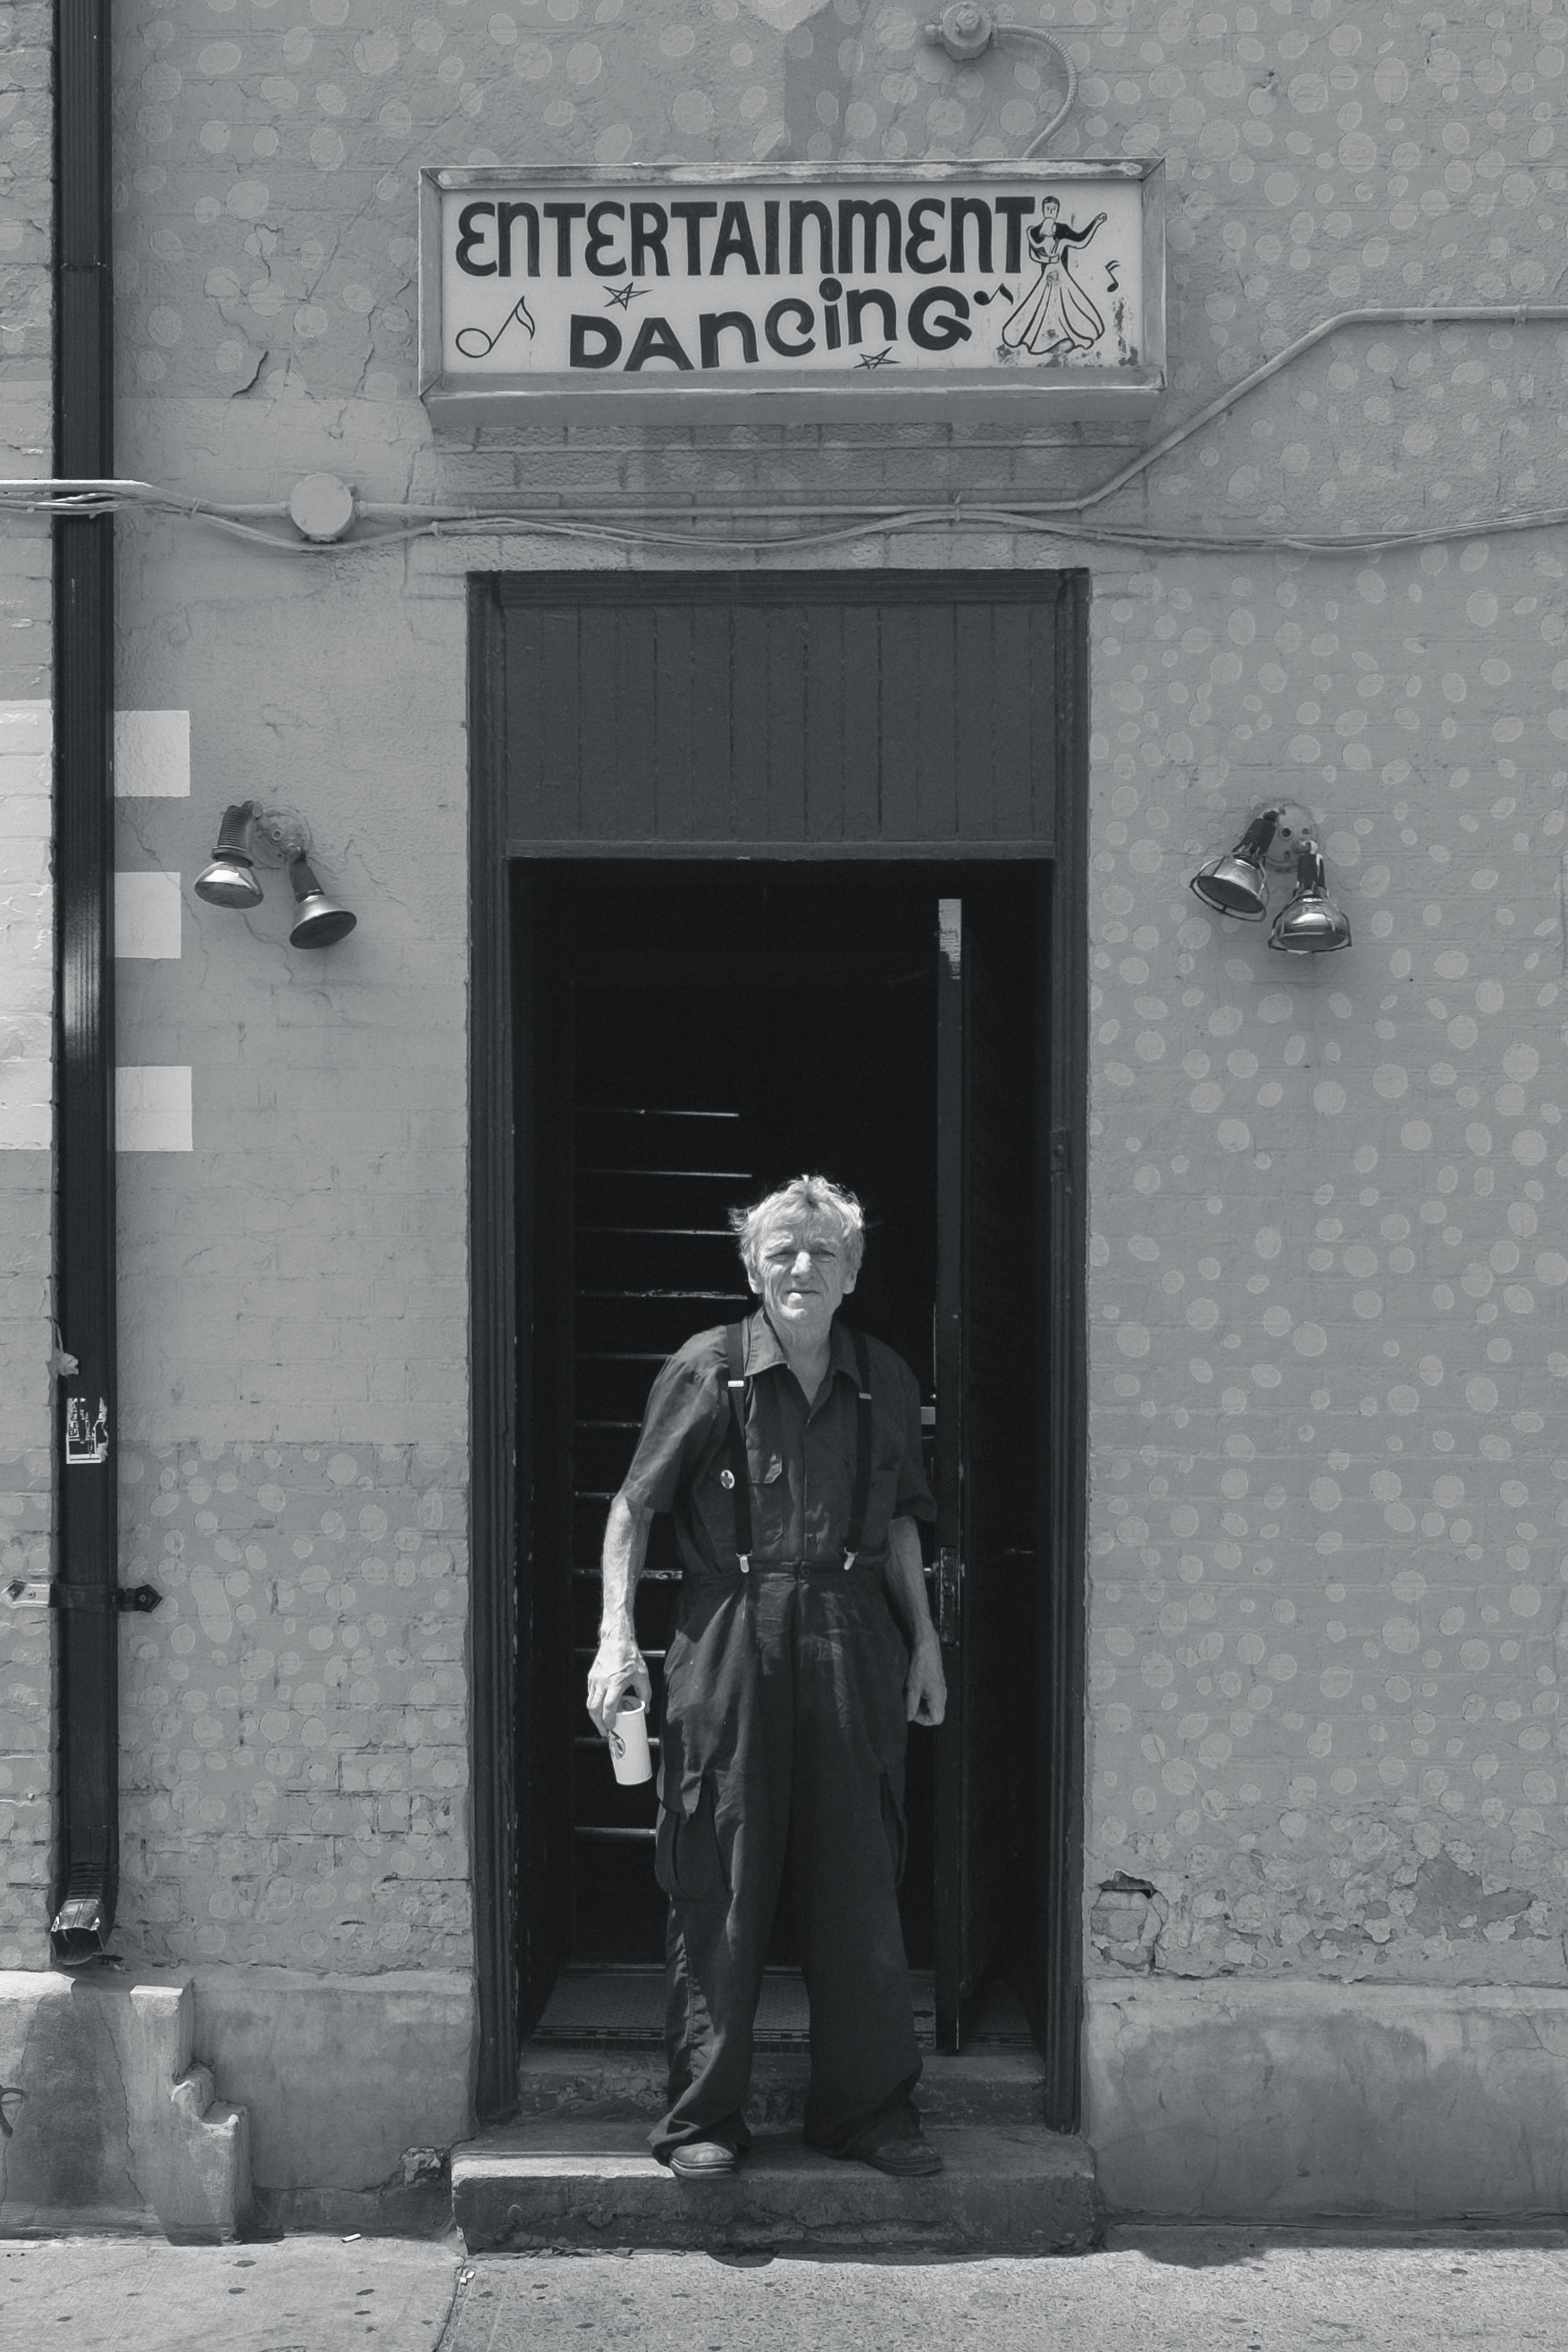 Black and white shot of older man in dungarees holding drink in doorway with dancing sign